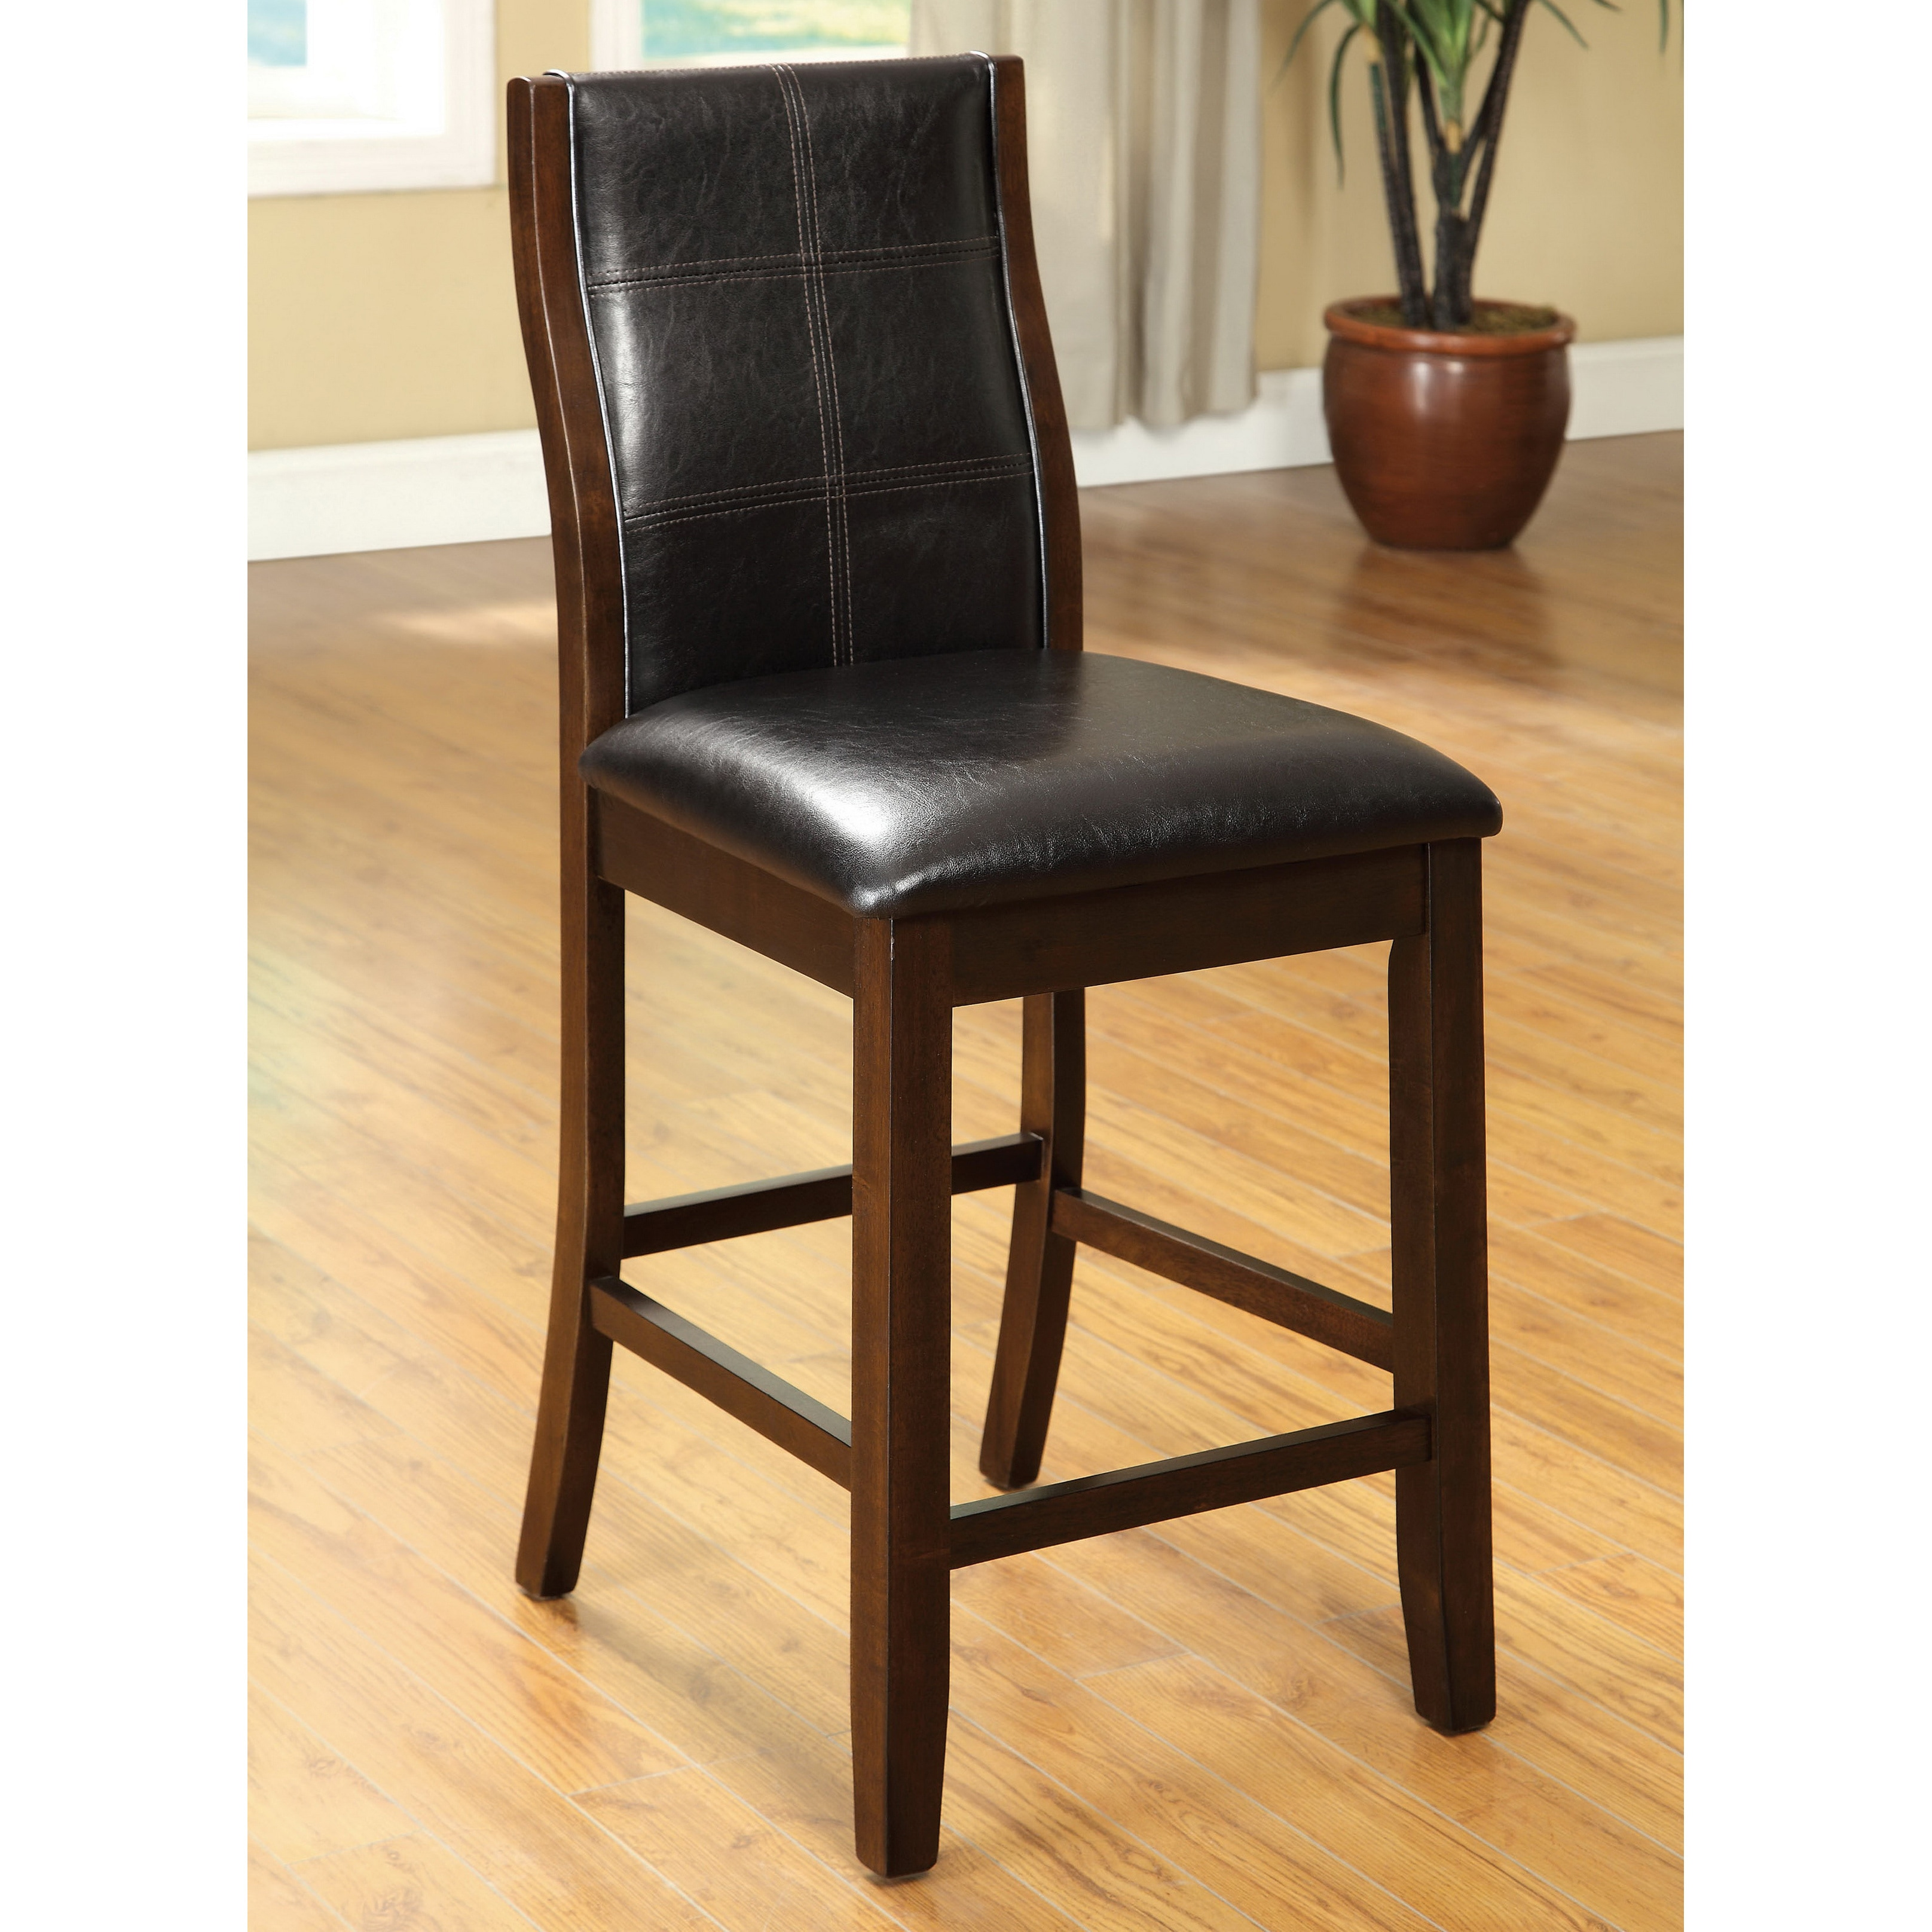 Shop Copper Grove Chapleau Leatherette 25 Inch Counter Height Dining